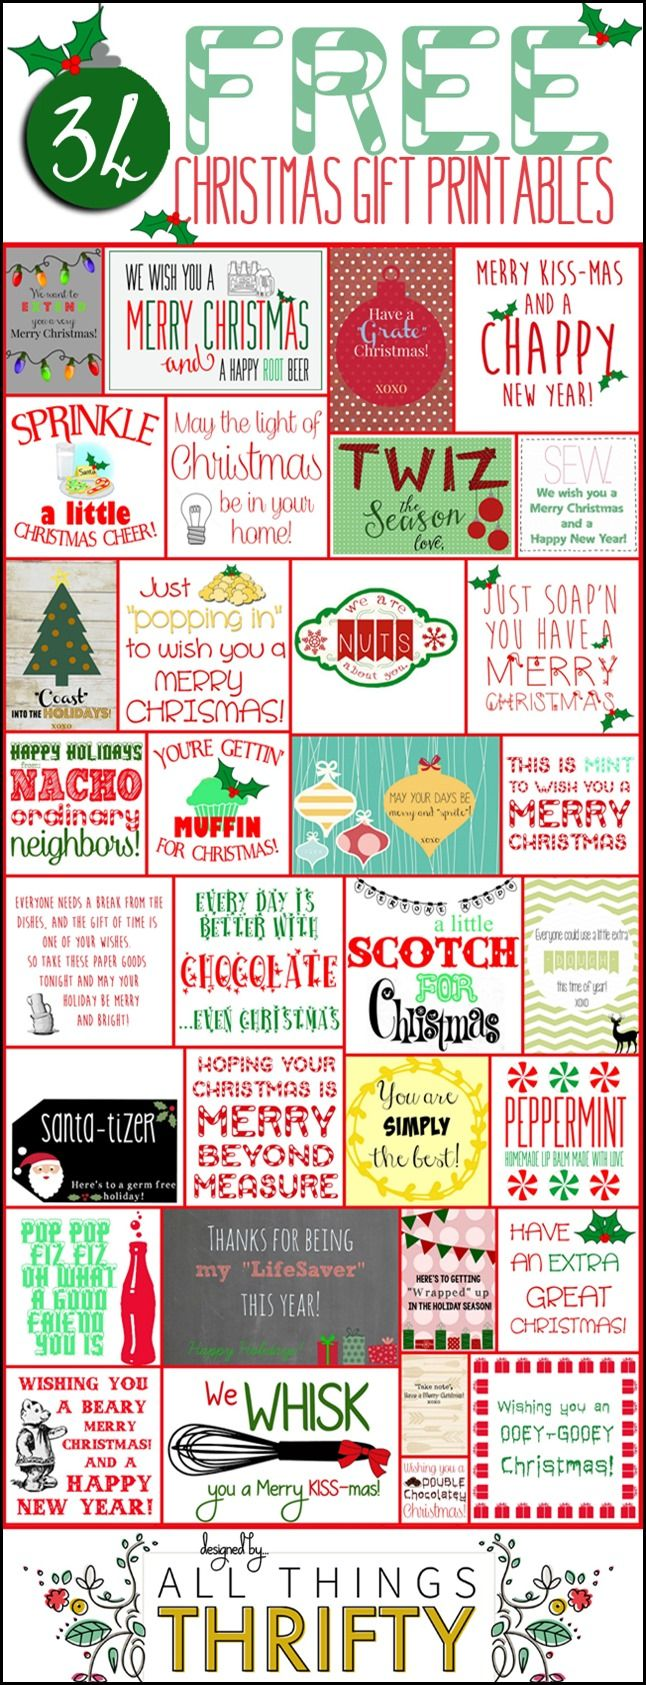 Gift tags?  Social Language?  Take a look through the sheet and think about cutting out the ones that are appropriate for use with your middle school/high school social language group.  Make predictions about the gifts, why is it funny? What other meanings are there?  What is being alluded to?